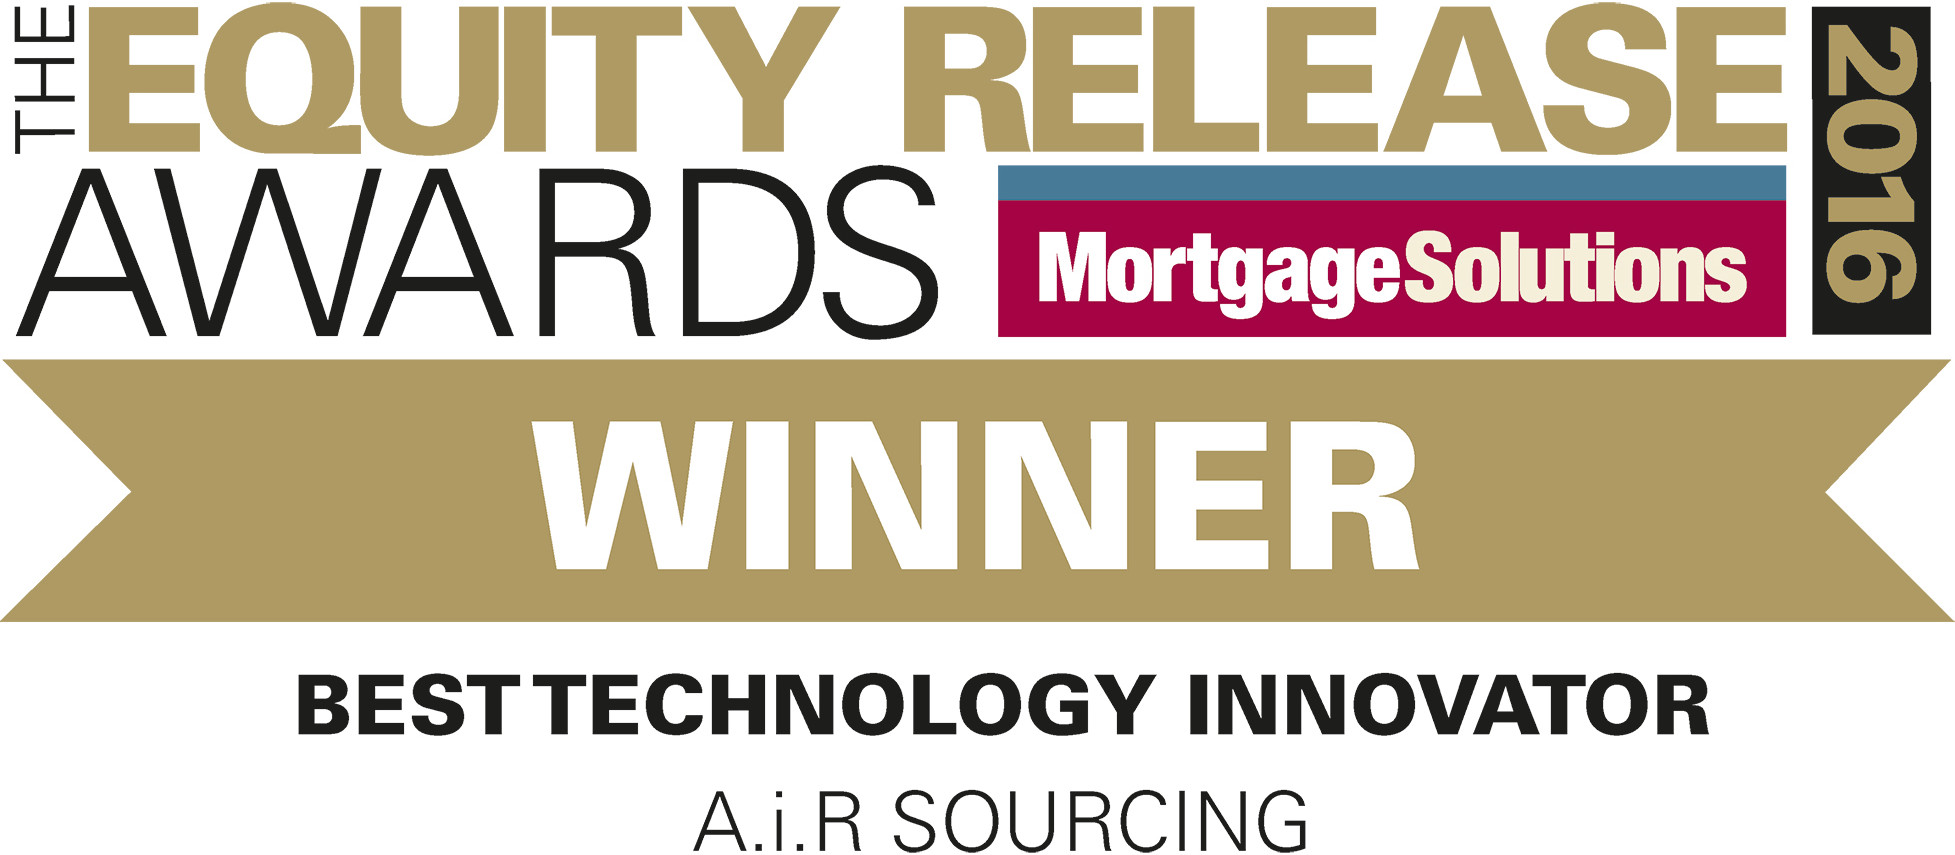 Equity Release Awards 2016 Winner - Best Technology Innovator